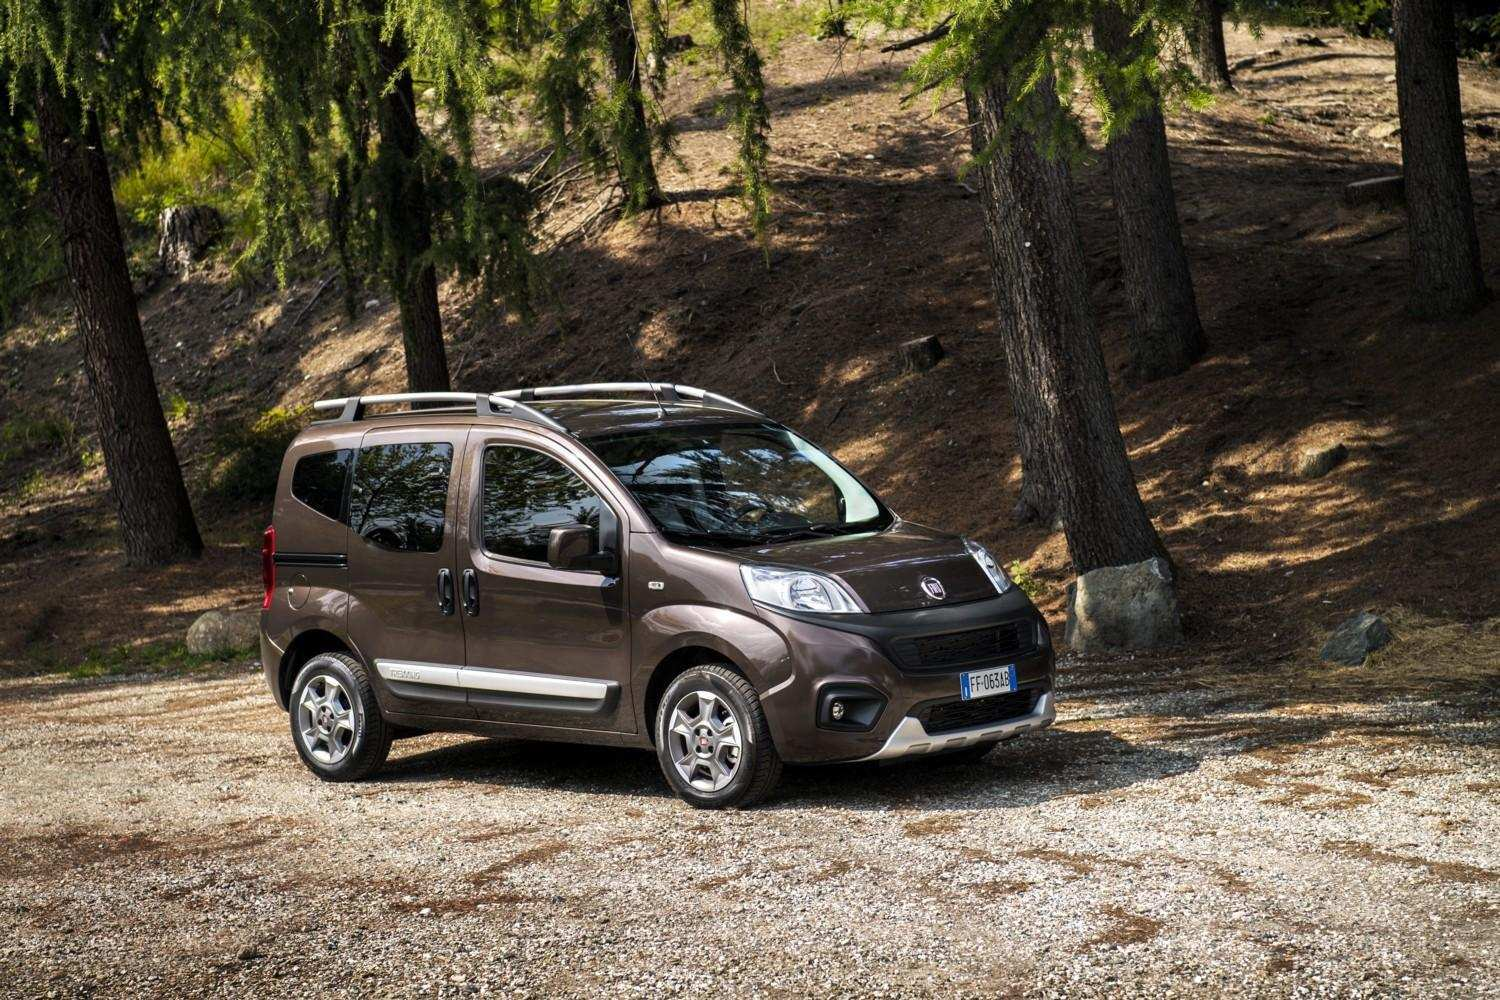 32 All New Fiat Qubo 2020 Performance with Fiat Qubo 2020